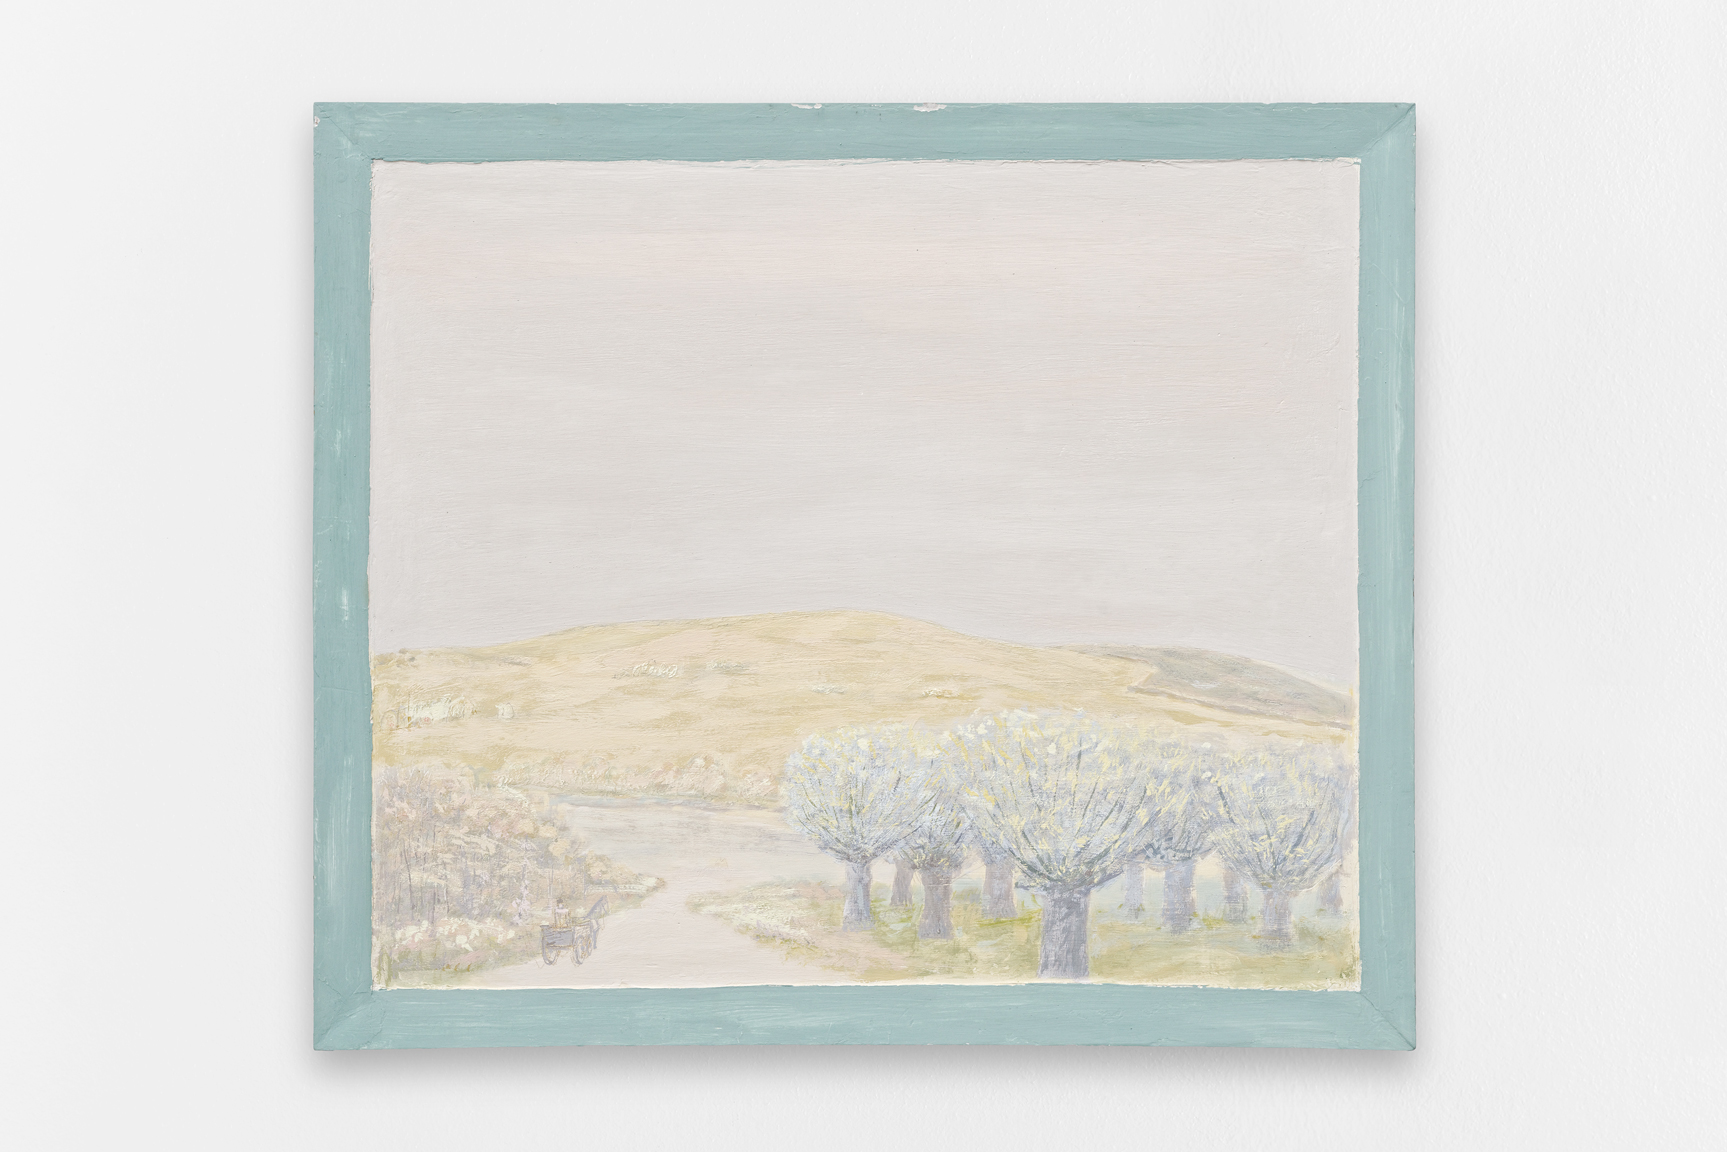 Paysage,  Sorin Câmpan, 2019, acrylic and gesso on board, 98 x 83,5 cm 